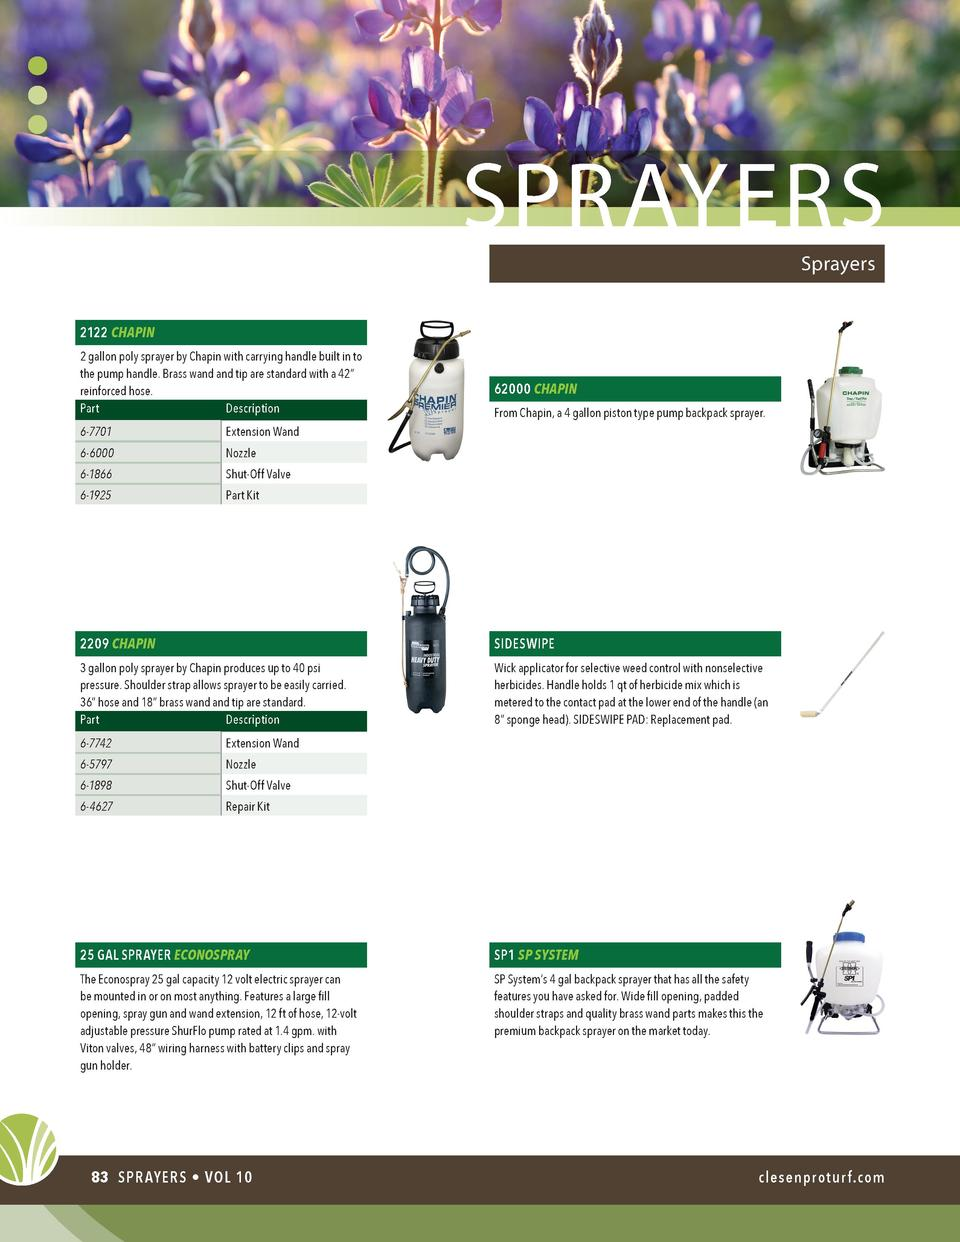 sprayers Sprayers  2122 CHAPIN 2 gallon poly sprayer by Chapin with carrying handle built in to the pump handle. Brass wan...